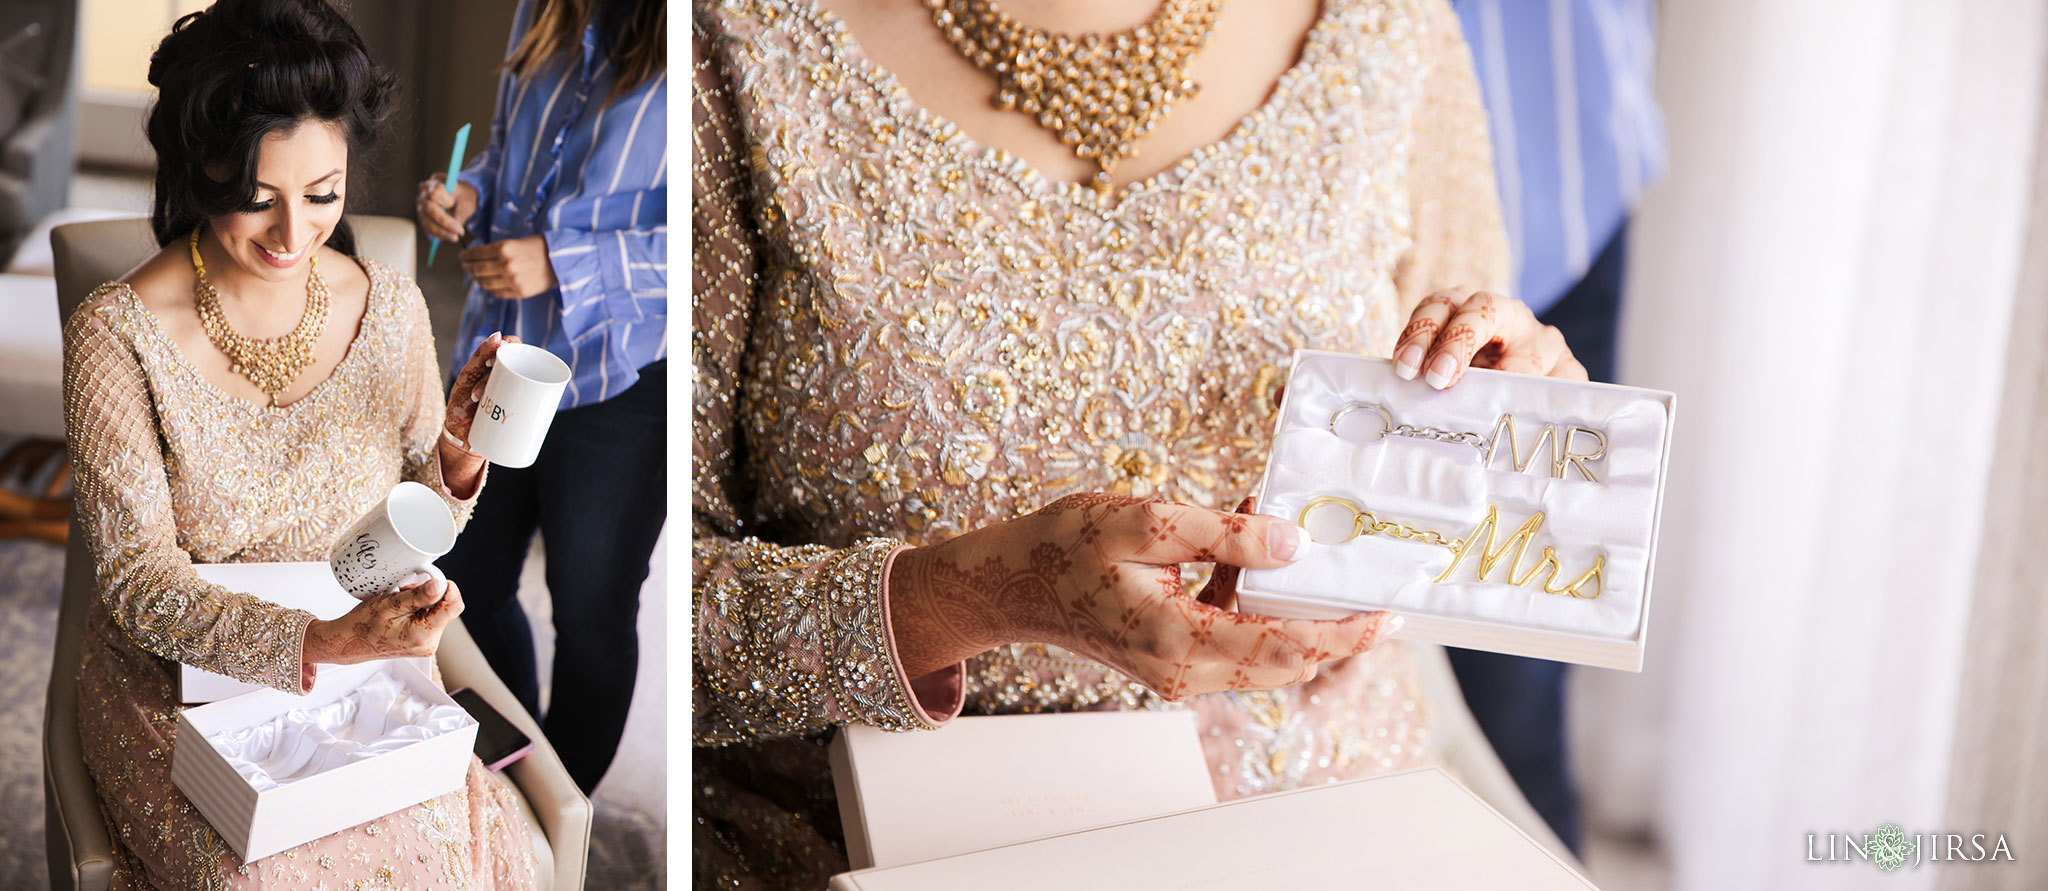 003 ritz carlton laguna niguel south asian wedding photography